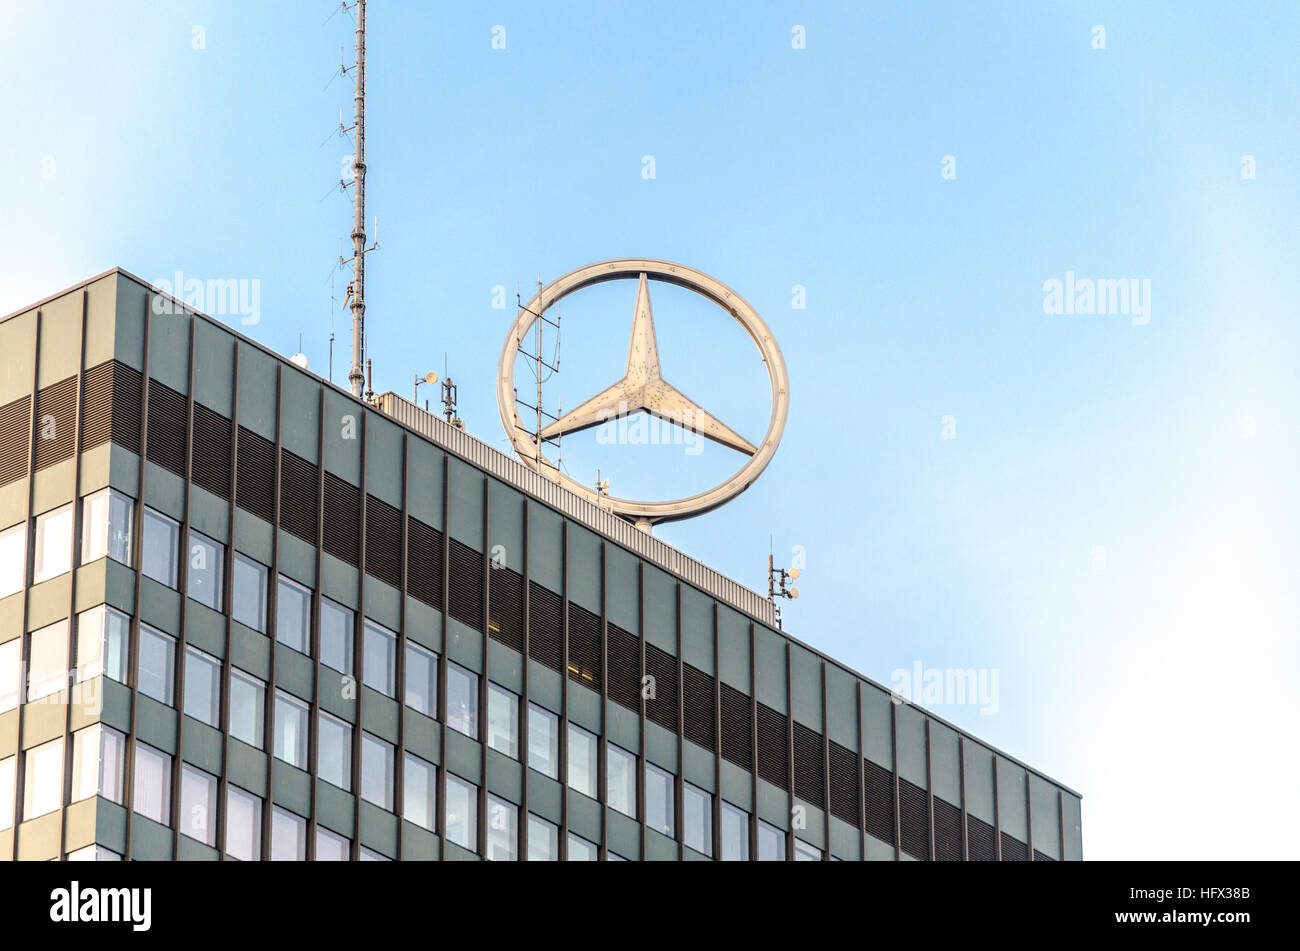 Mercedes-Benz logo on top of the high-rise tower at the Europa-Center. Breitscheidplatz, Berlin, Germany - Stock Image